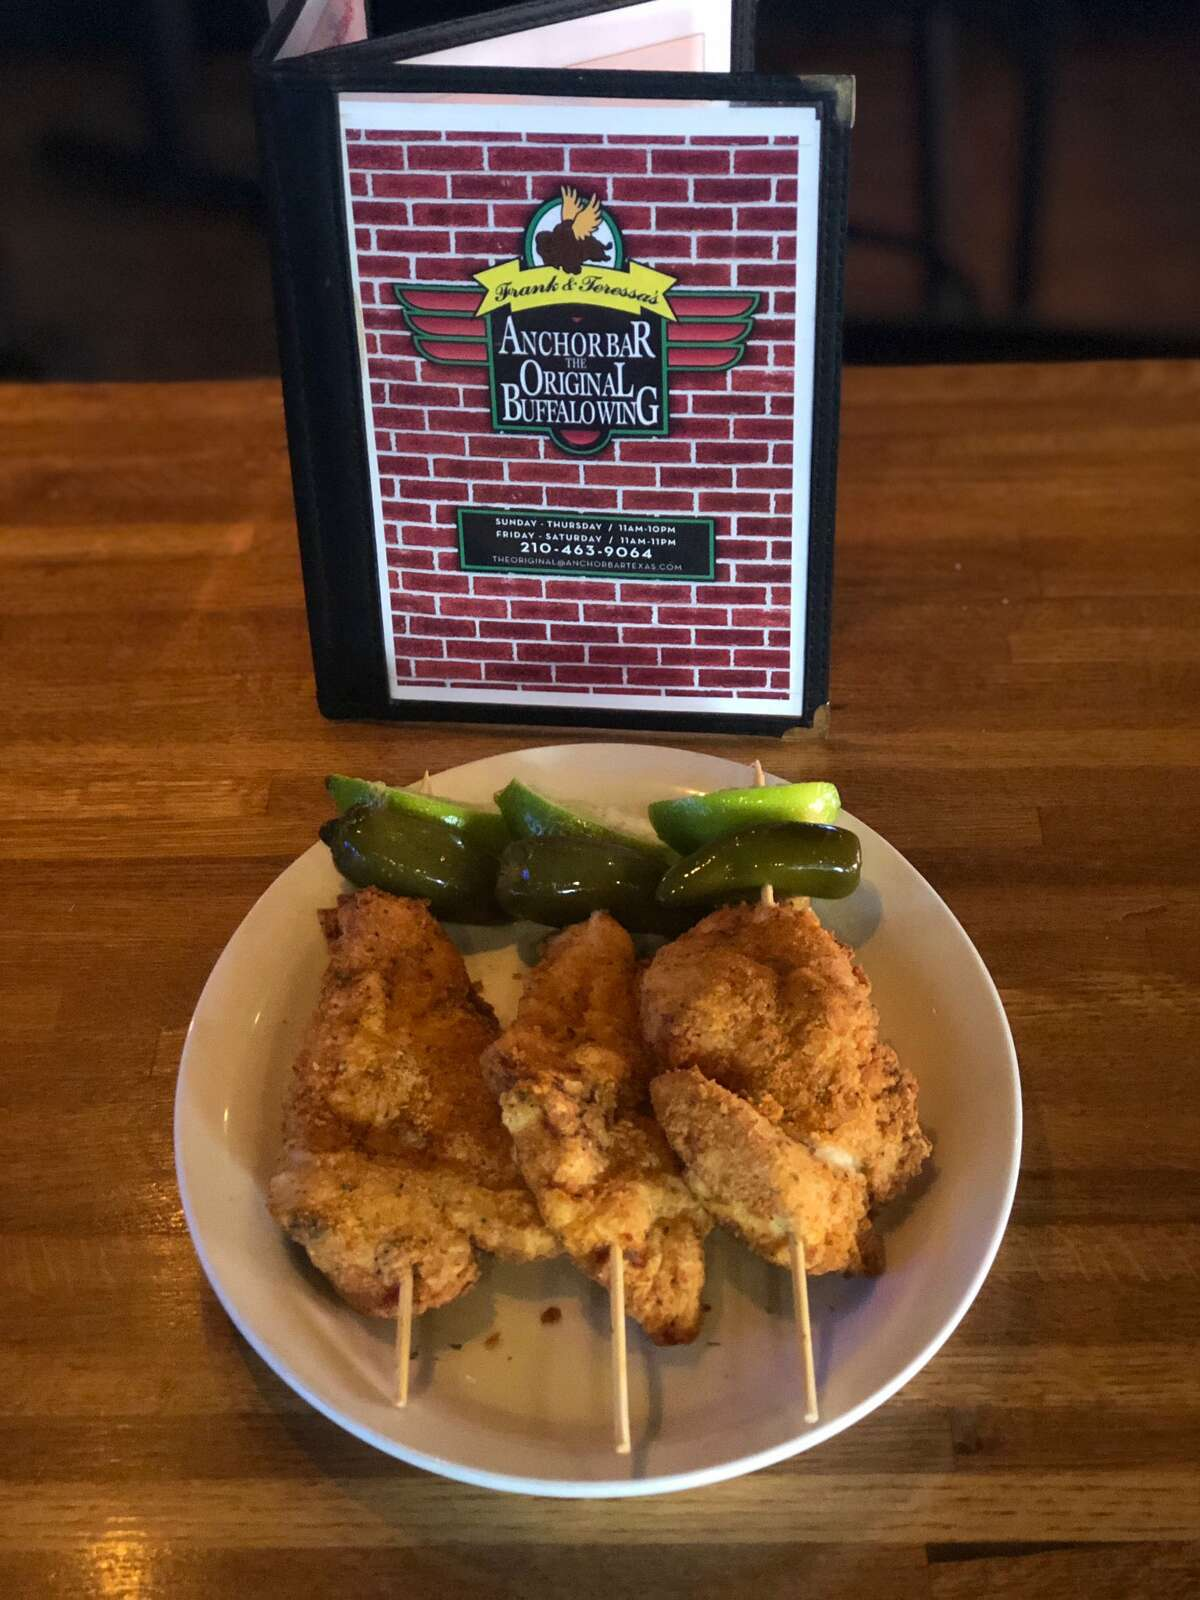 At The Anchor Bar, chickens on sticks are part the regular menu. The bar sells a pack of three for $6.99. Orders can be placed by calling either the San Antonio or Schertz location at 210-492-9464 or 210-463-9064.